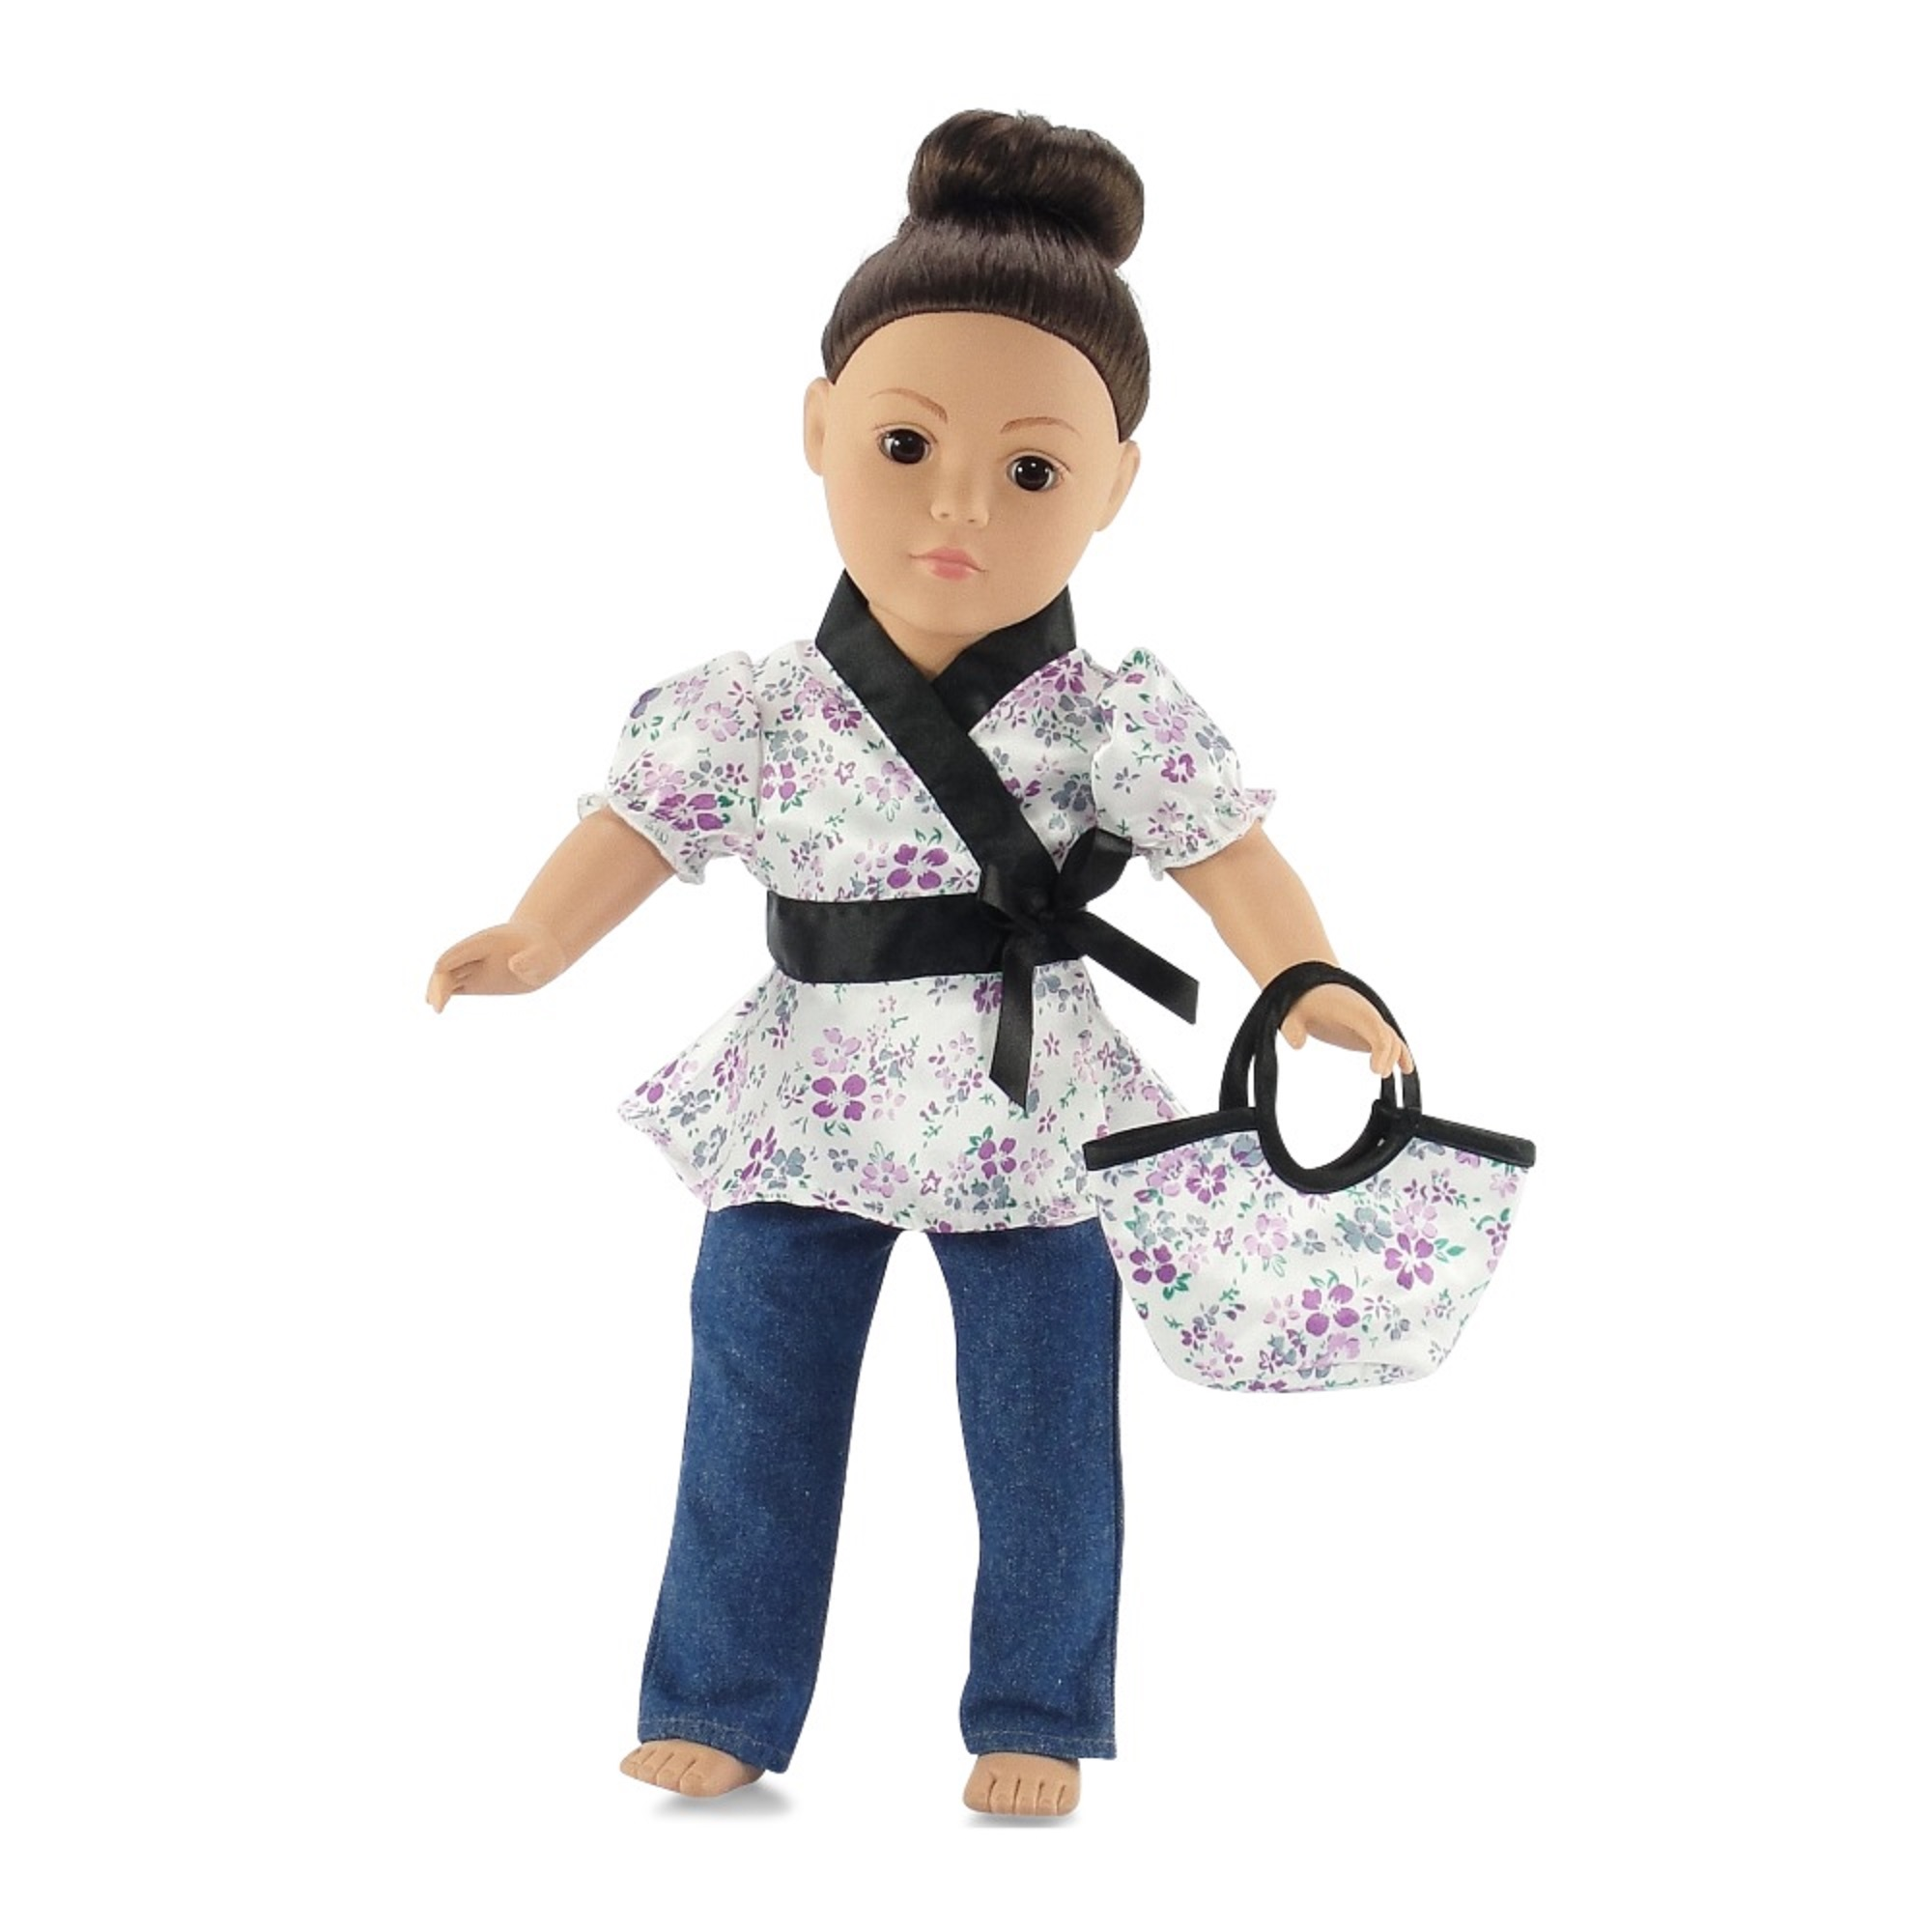 "18 Inch Doll Clothes Fits American Girl - Satin Tunic & Jeans Outfit Includes 18"" Dolls Accessories"